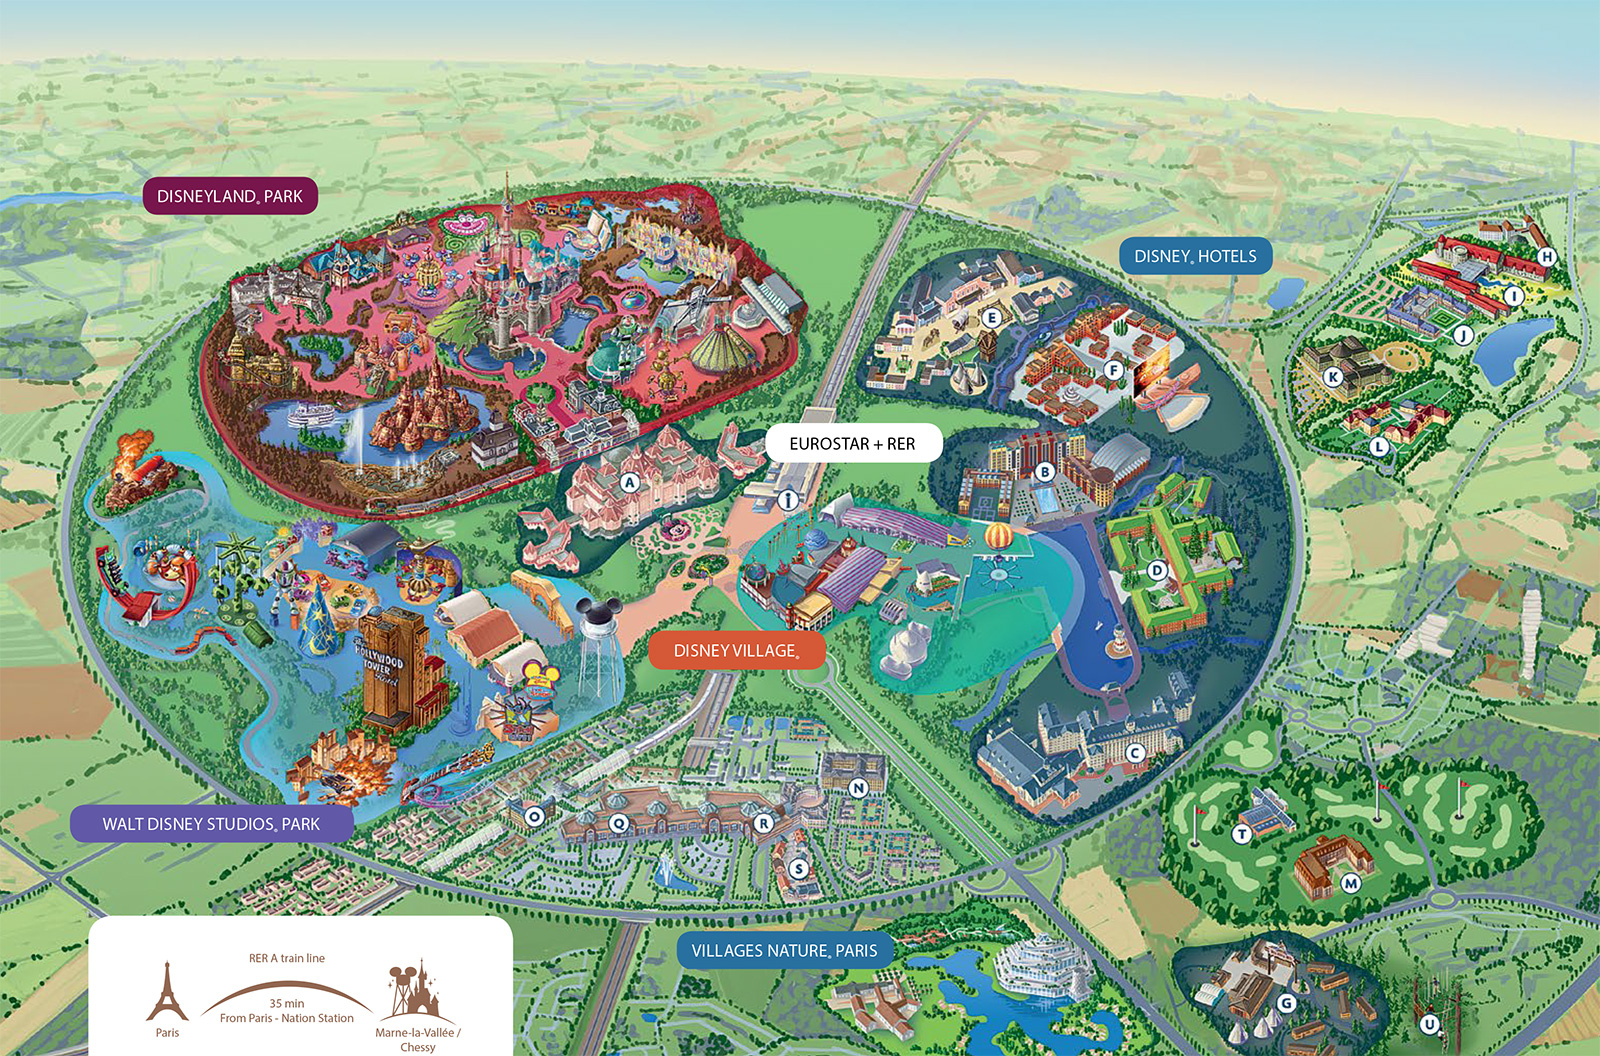 Disneyland Paris Map - Printable Disneyland Paris Map 2018